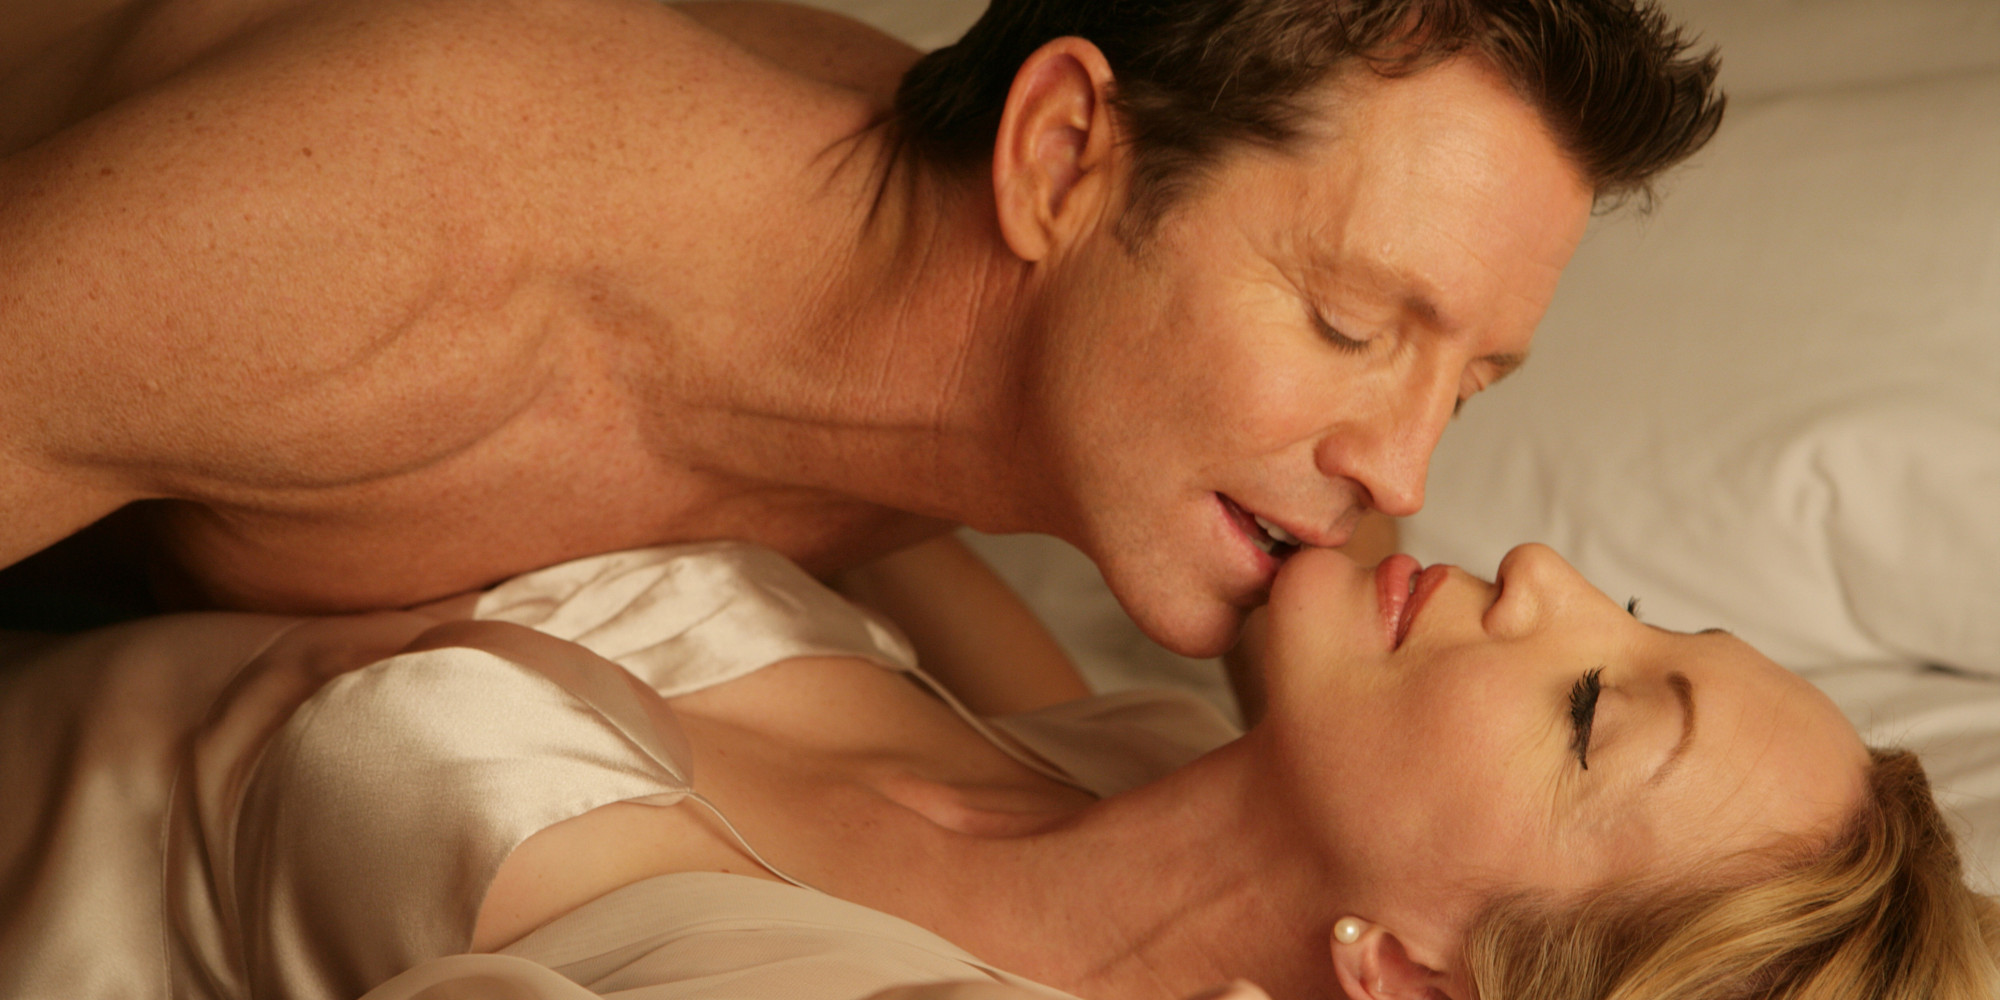 50 year old couple having sex